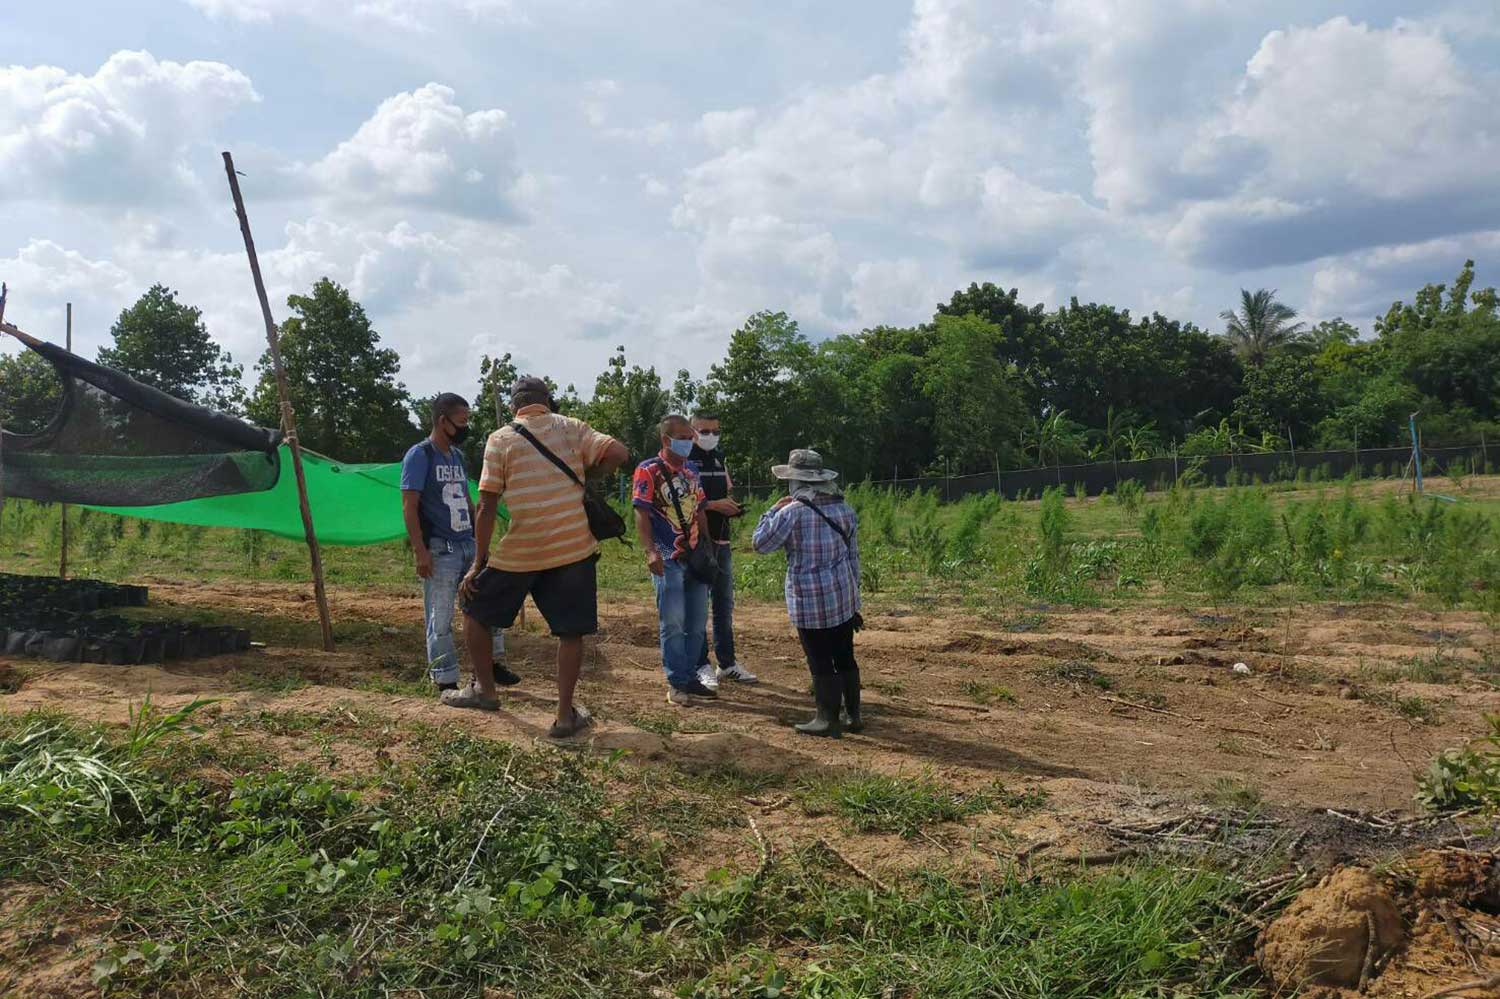 Police and local officials raid an illegal marijuana farm near the Pang Sida National Park in Watthana Nakhon district, Sa Kaeo. A 46-year-old man who admitted growing the 1200 plants was caught and charged. (Photo: Sawat Ketngam)